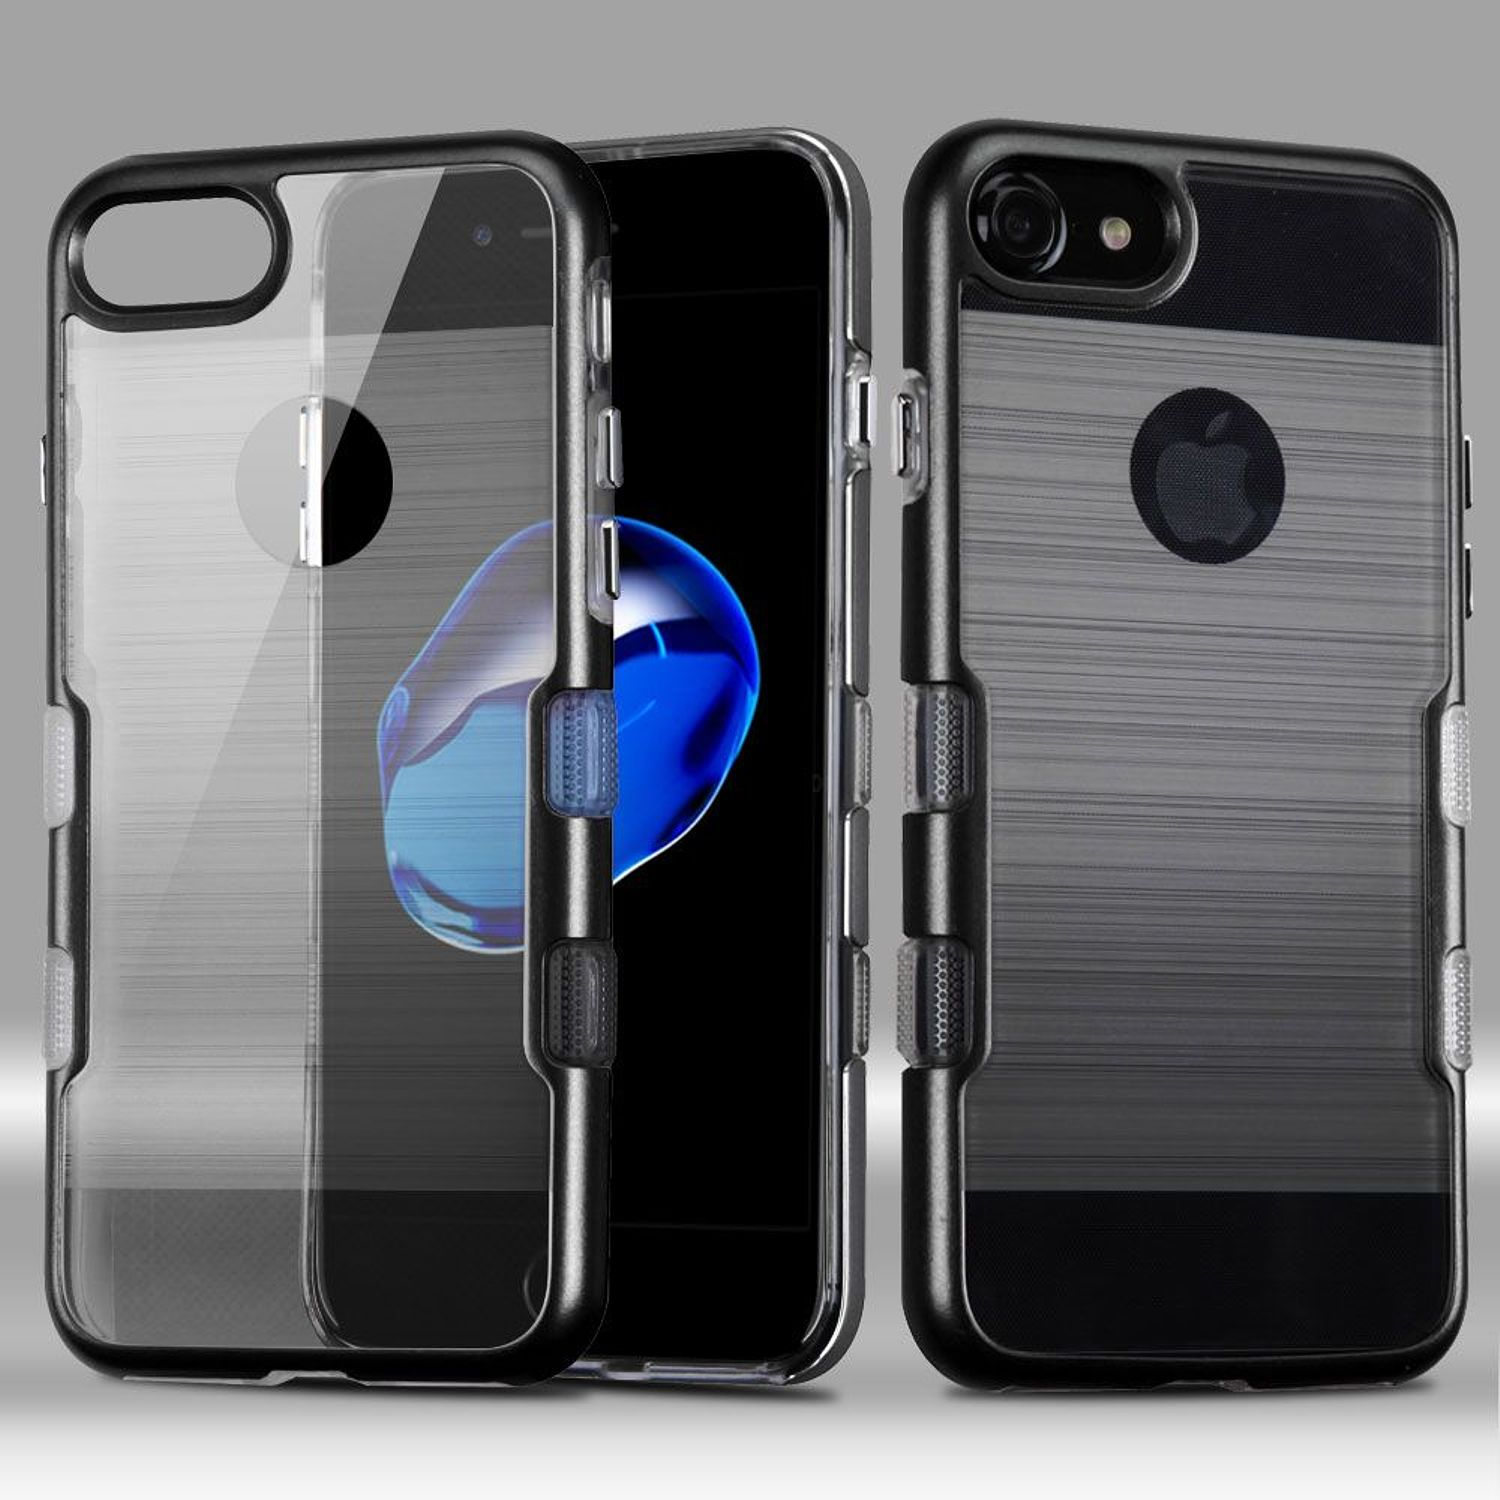 iPhone 8 Case, iPhone 7 Case, by Insten Tuff Dual Layer [Shock Absorbing] Hybrid Brushed Hard Plastic/Soft TPU Rubber Case Cover For Apple iPhone 8 / iPhone 7, Black/Smoke